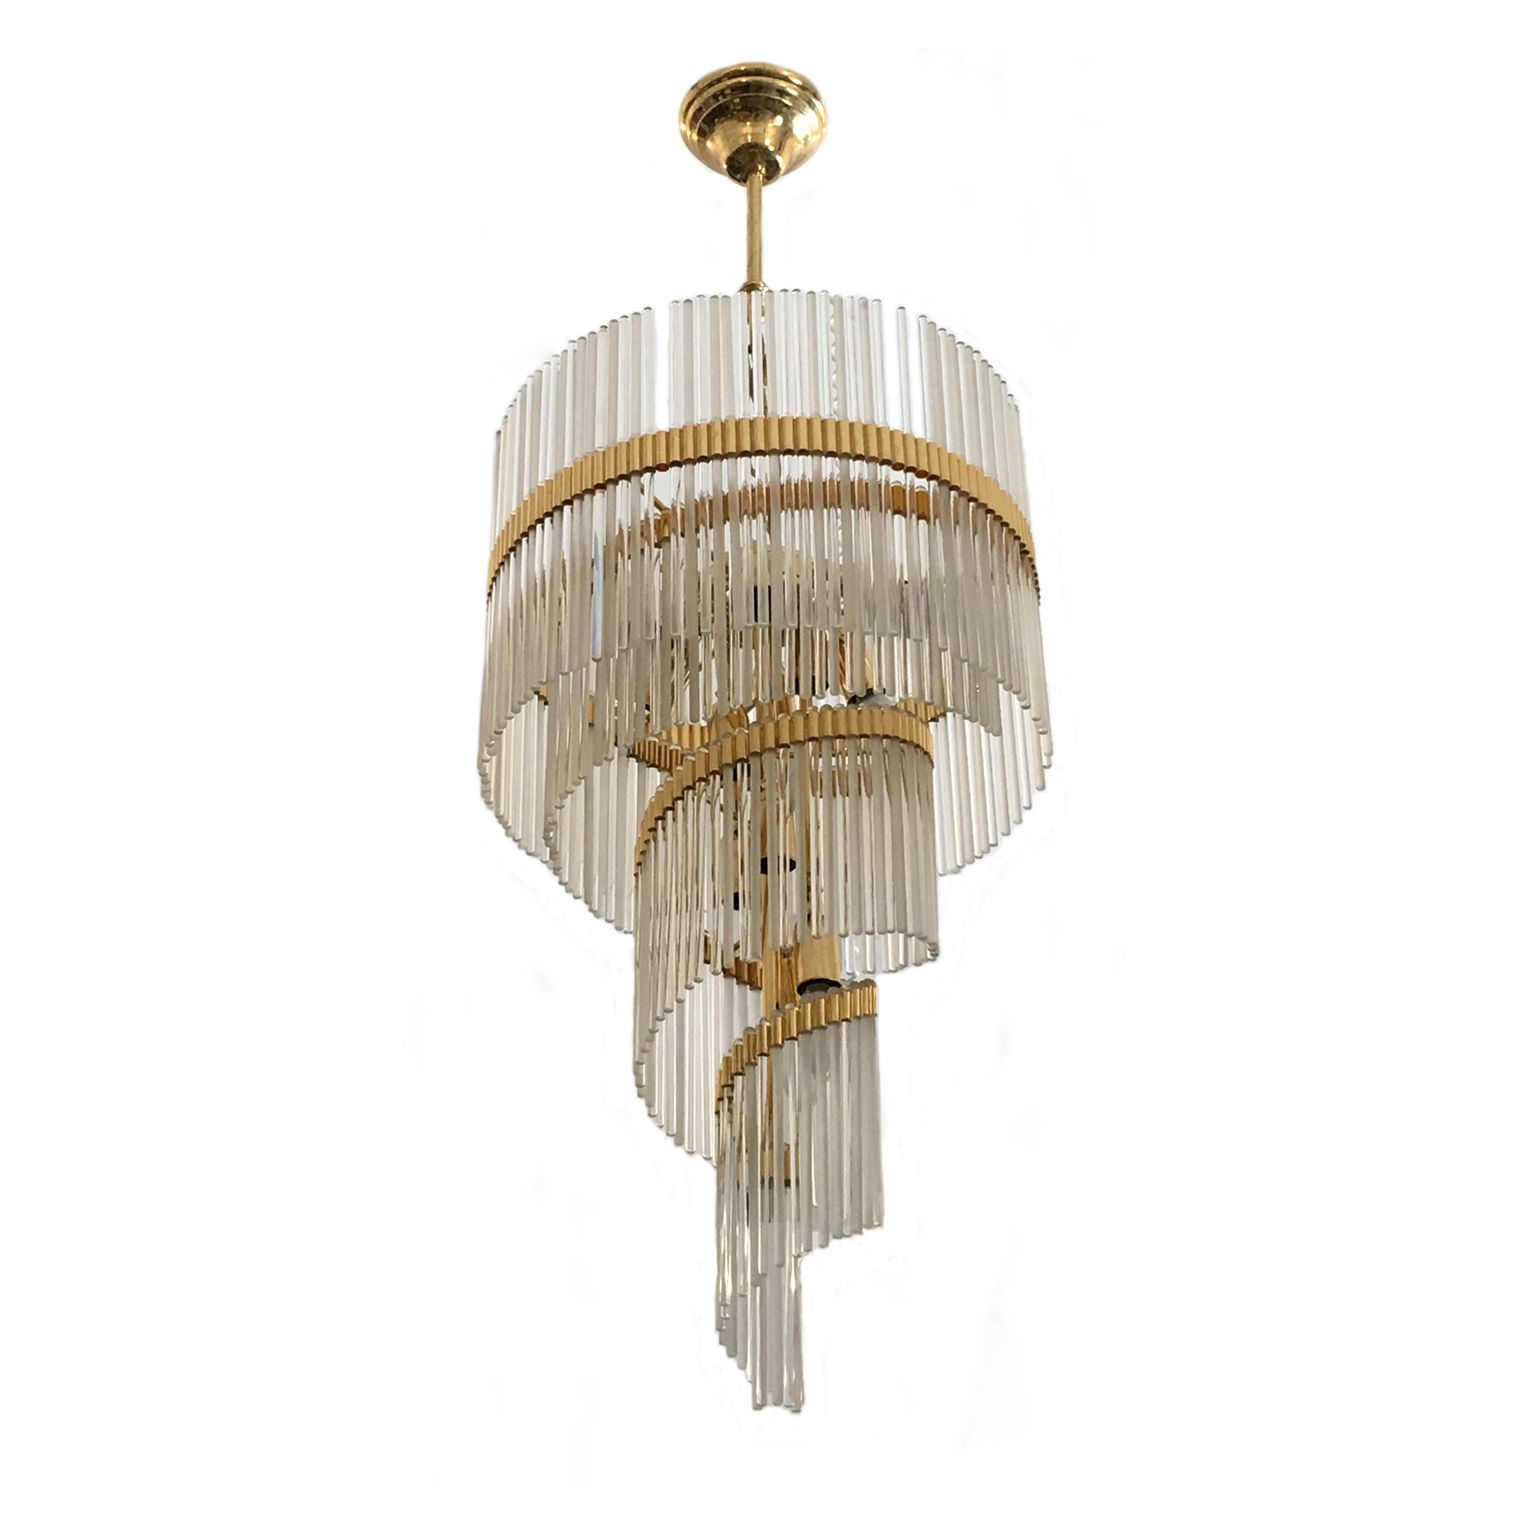 1970 Spiral glass Chandelier with gold brass structure